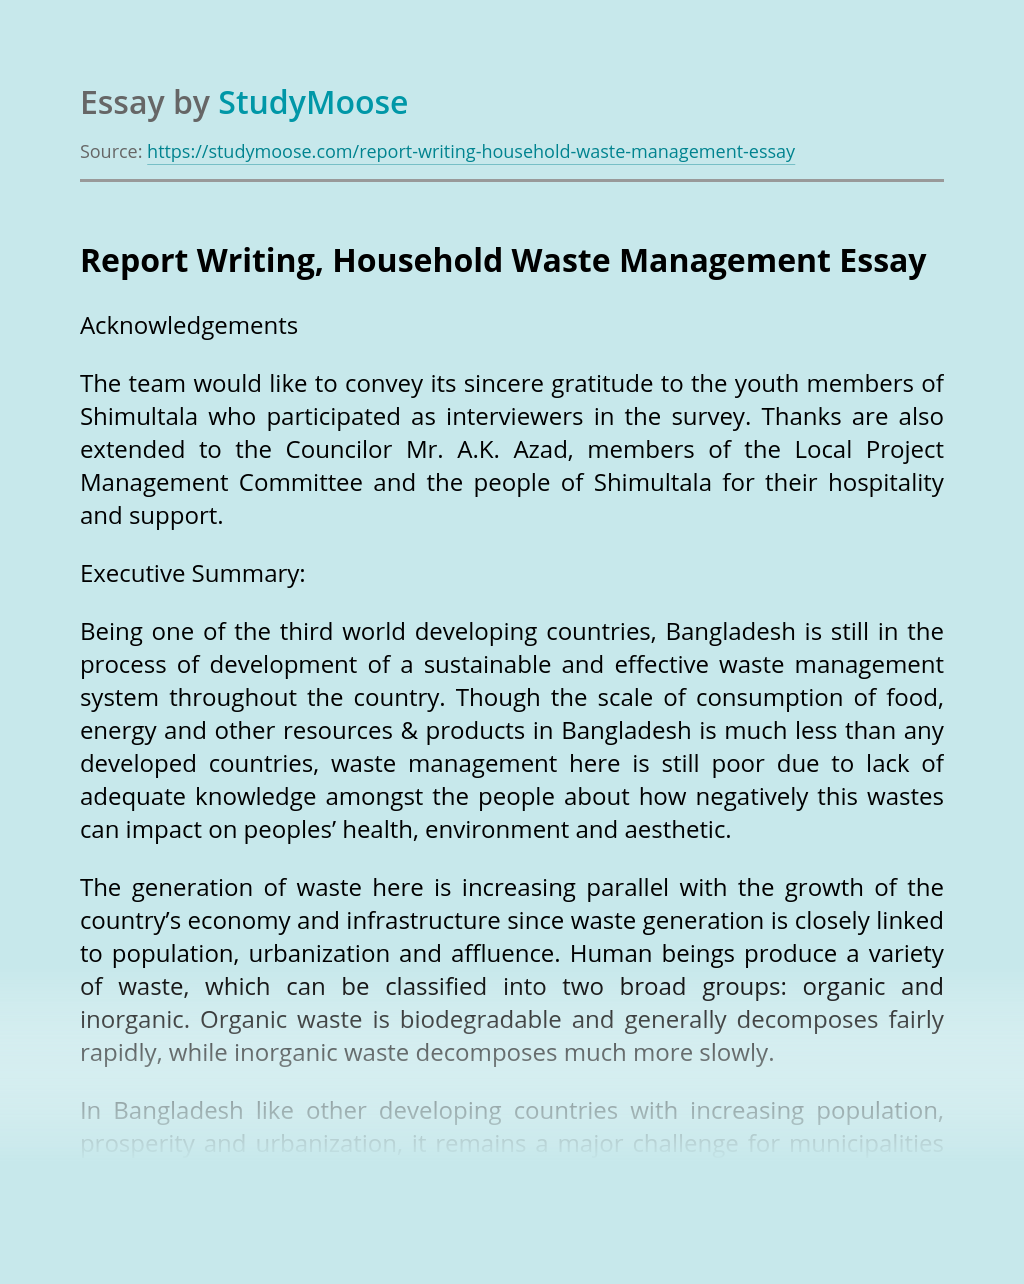 Report Writing, Household Waste Management